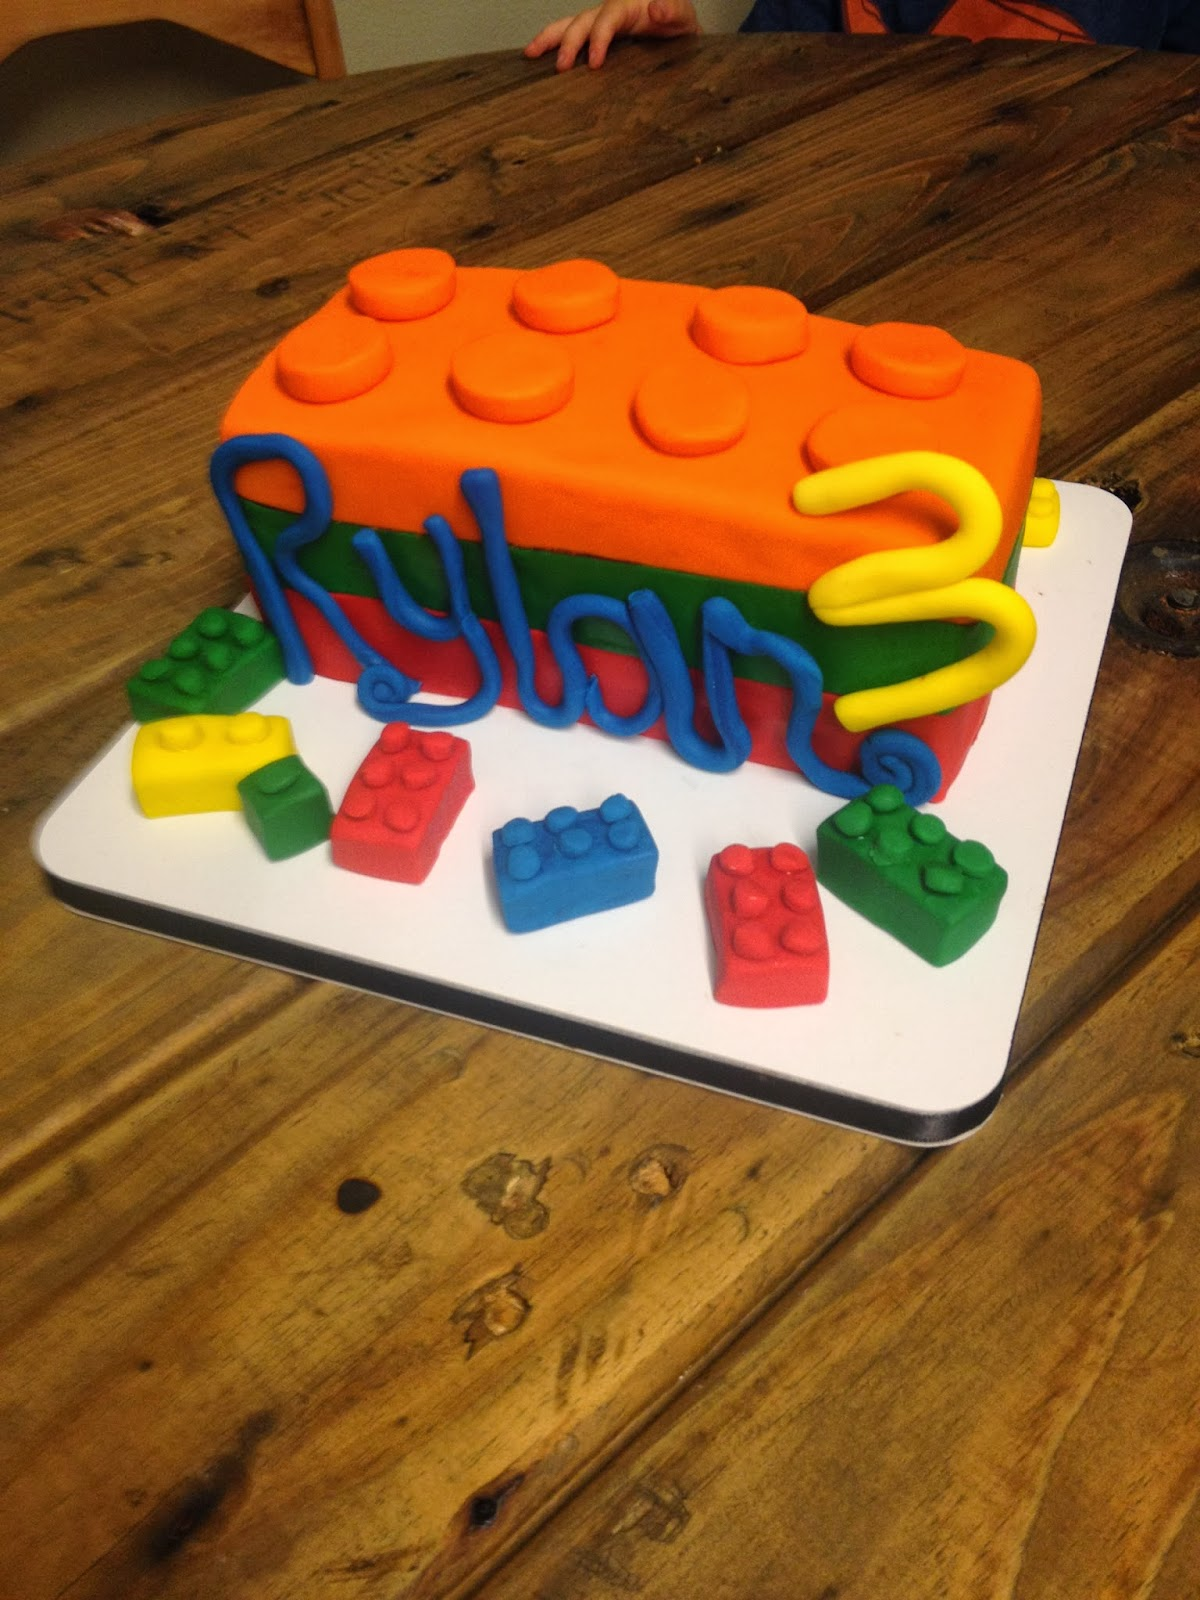 Sweet T S Cake Design Lego Sculpted 3rd Birthday Cake